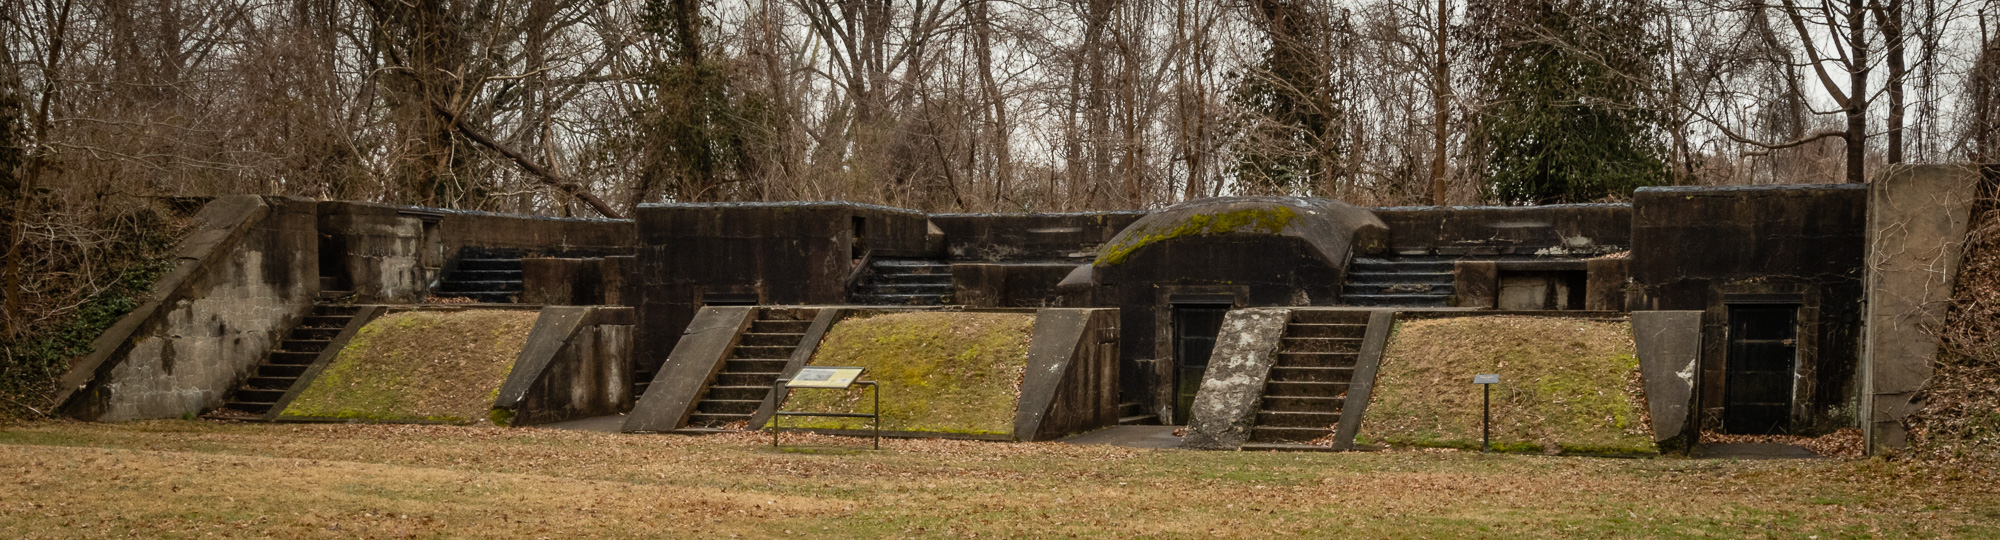 Battery Sater, Fort Hunt Park, Virginia